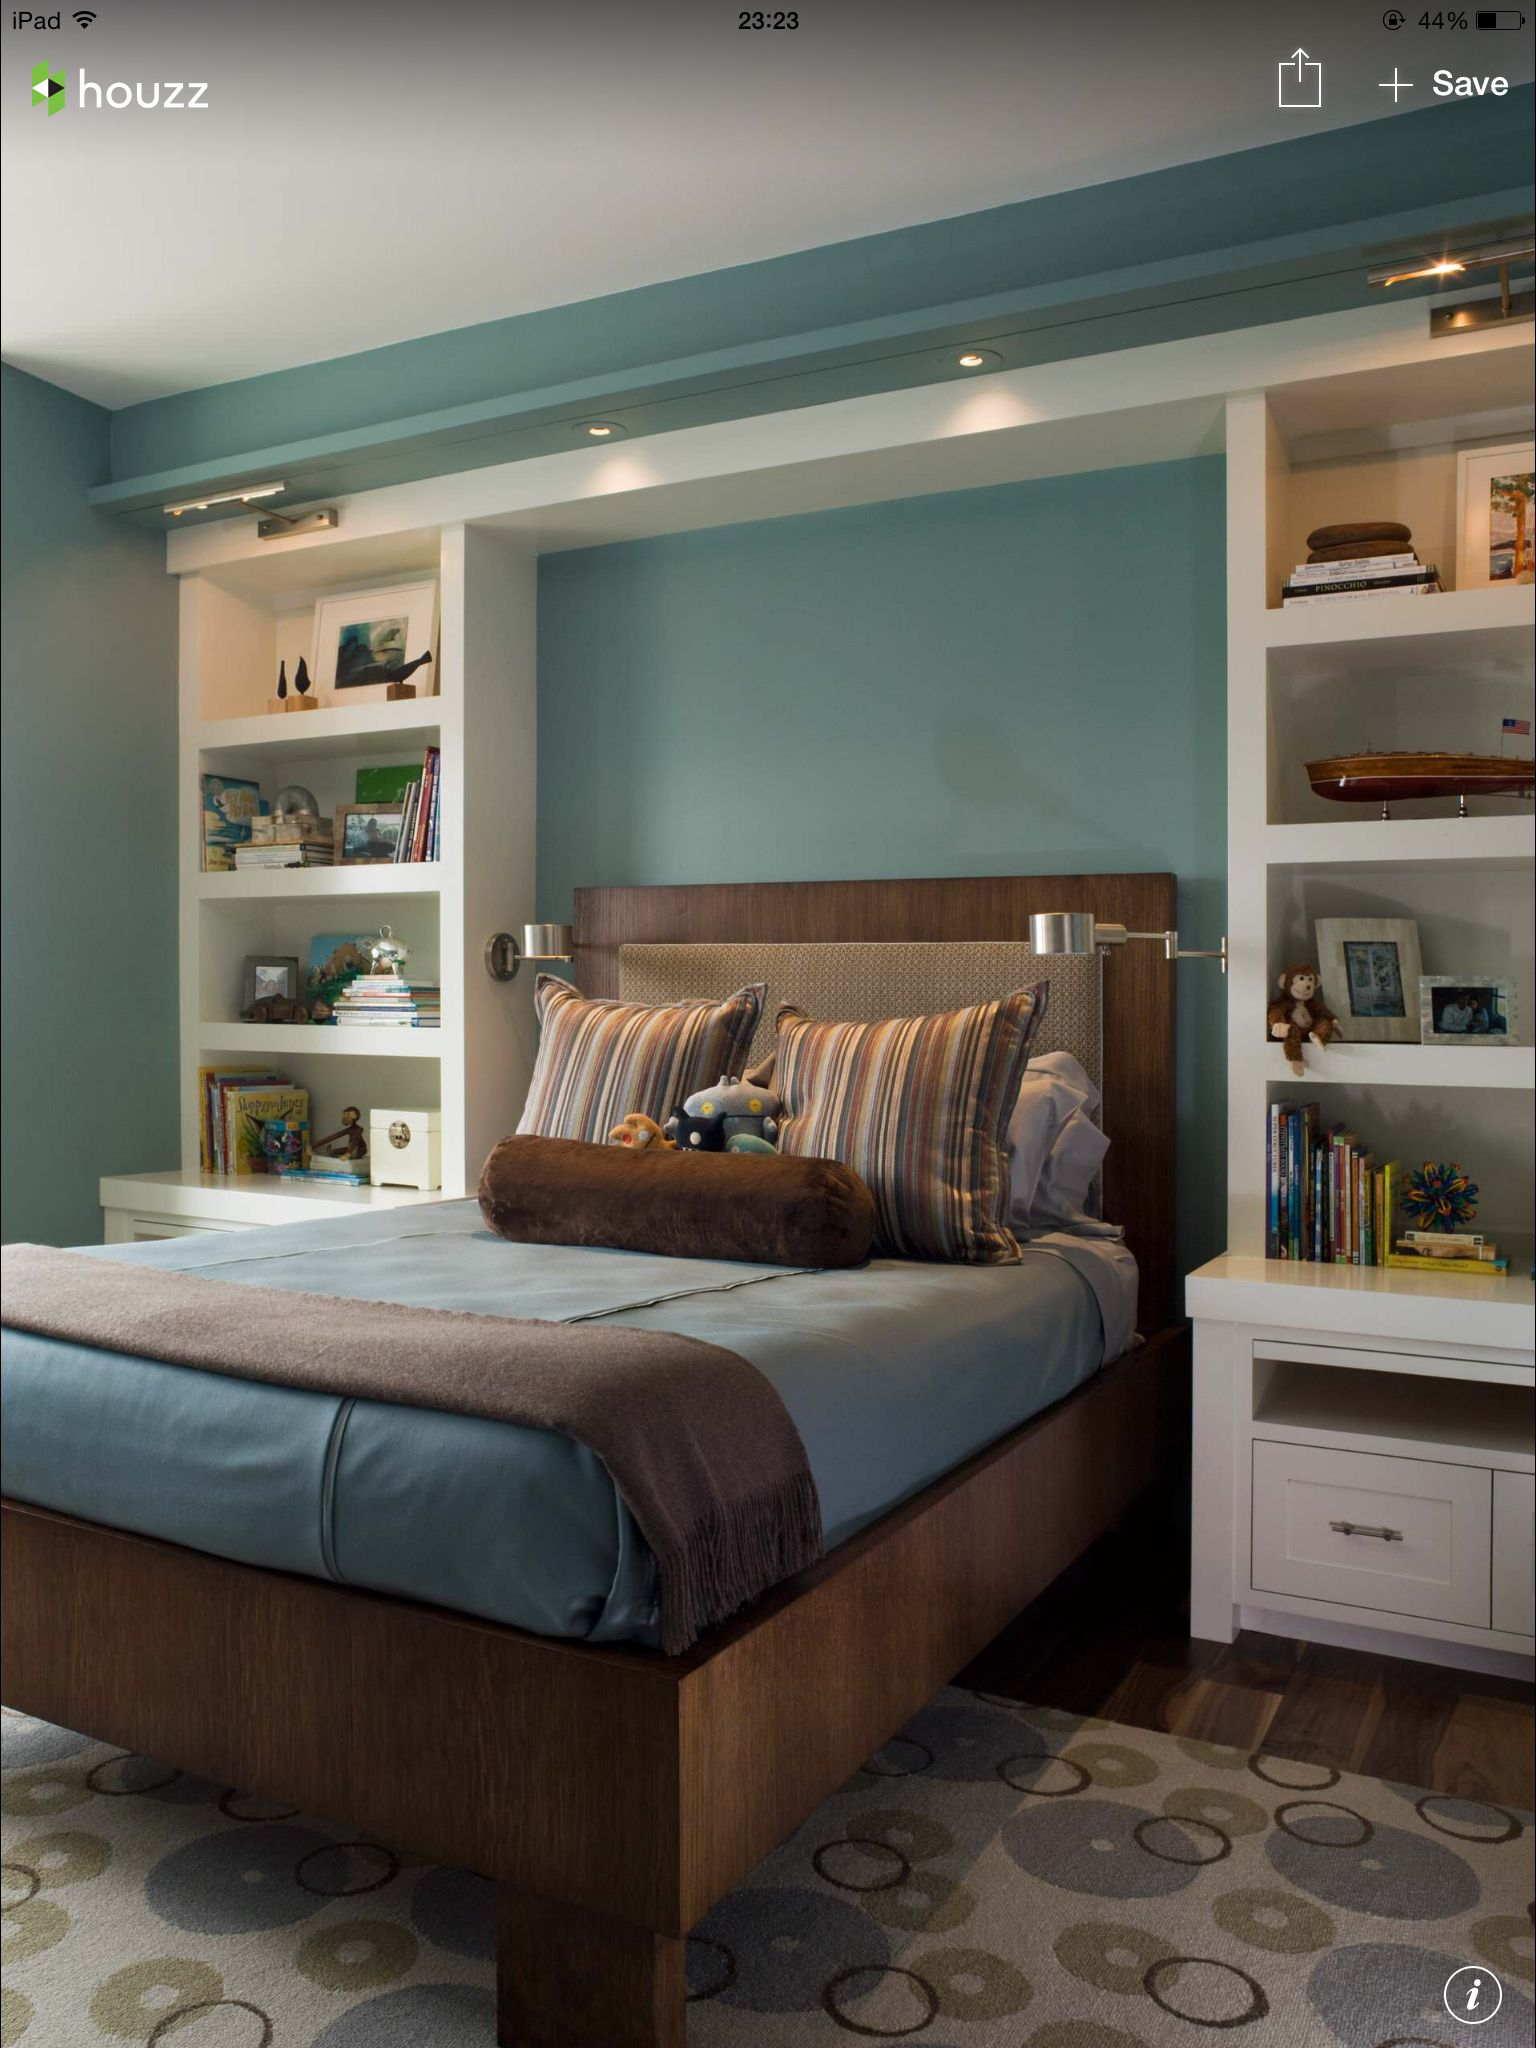 Librero/cabecera | Almacenamiento | Pinterest | Bedrooms, Decorating ...